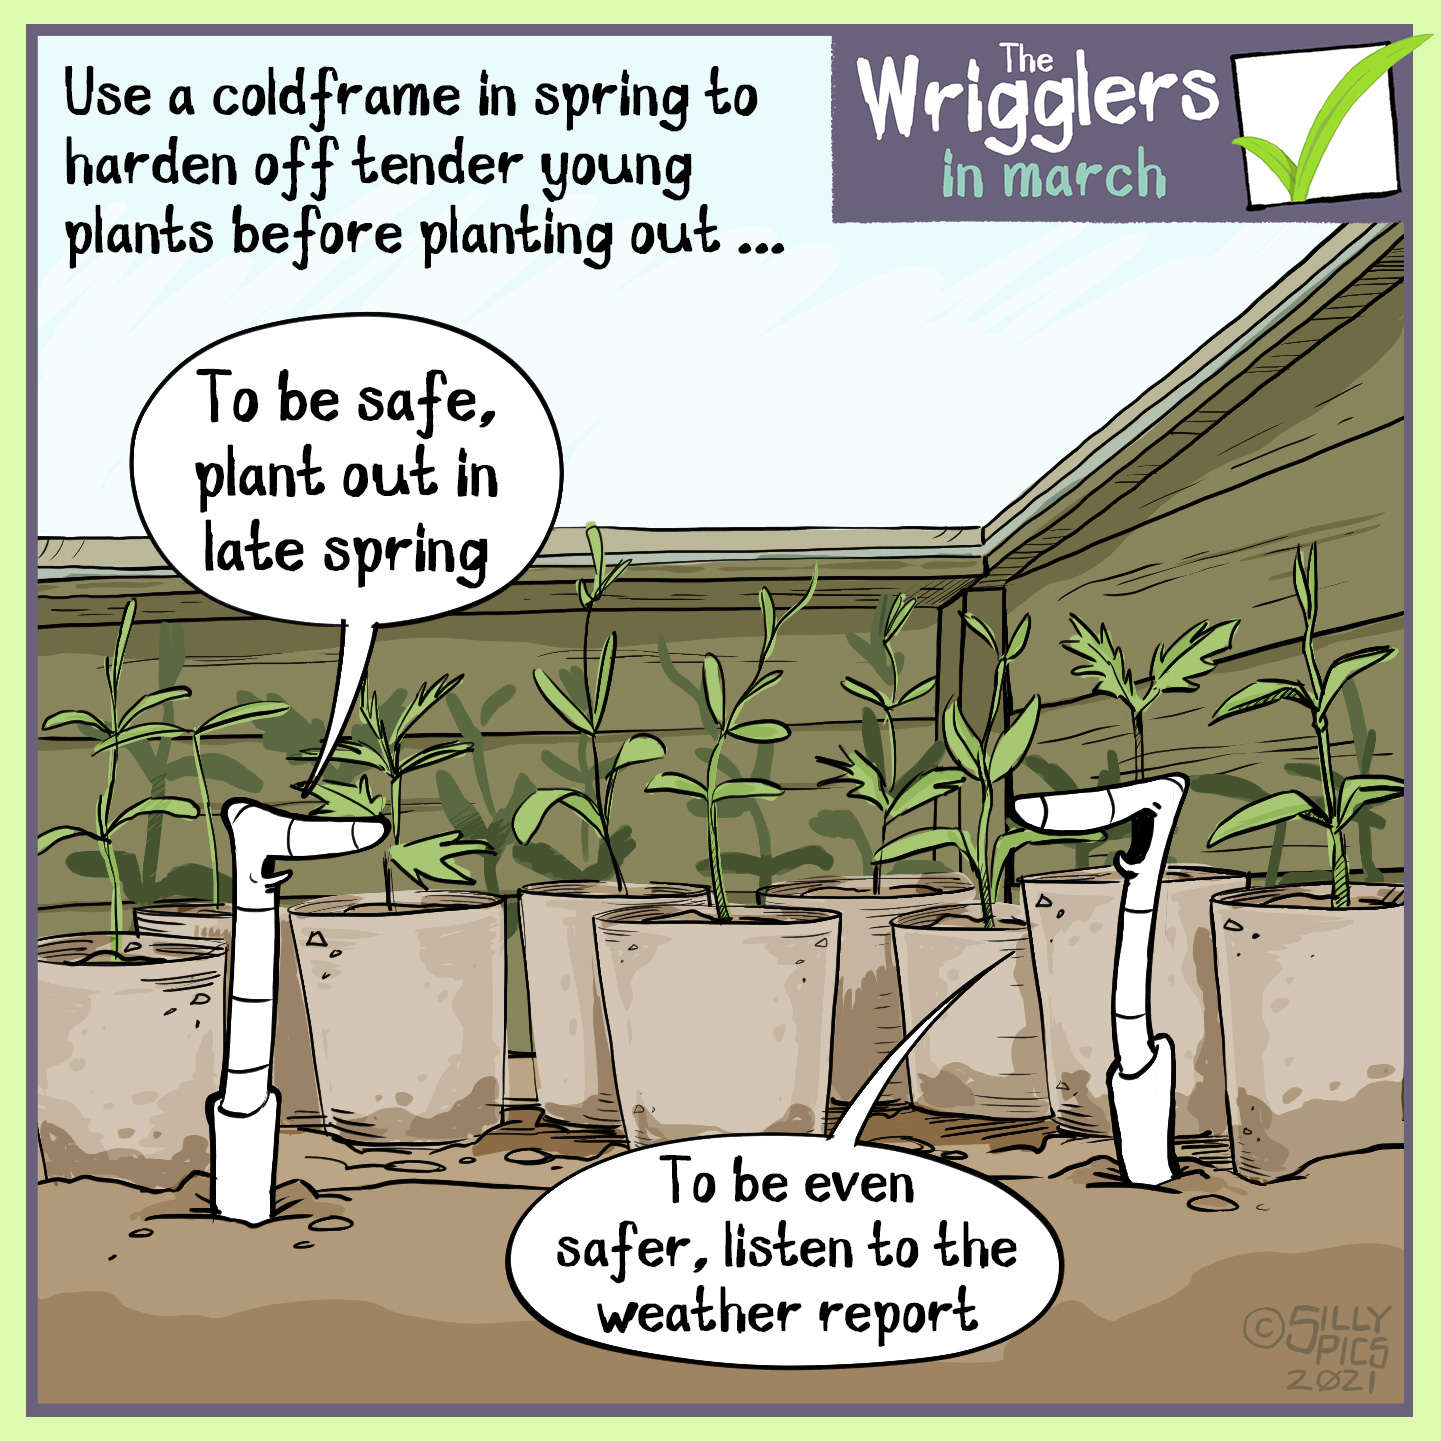 "Cartoon about planting out you seedlings from a cold frame in late spring. Two worms in a cold frame discussing when to plant out the young plants. One worm says to the other:""To be safe, best to plant out in late spring."" The other worm says, ""To be even safer, listen to the weather report."""